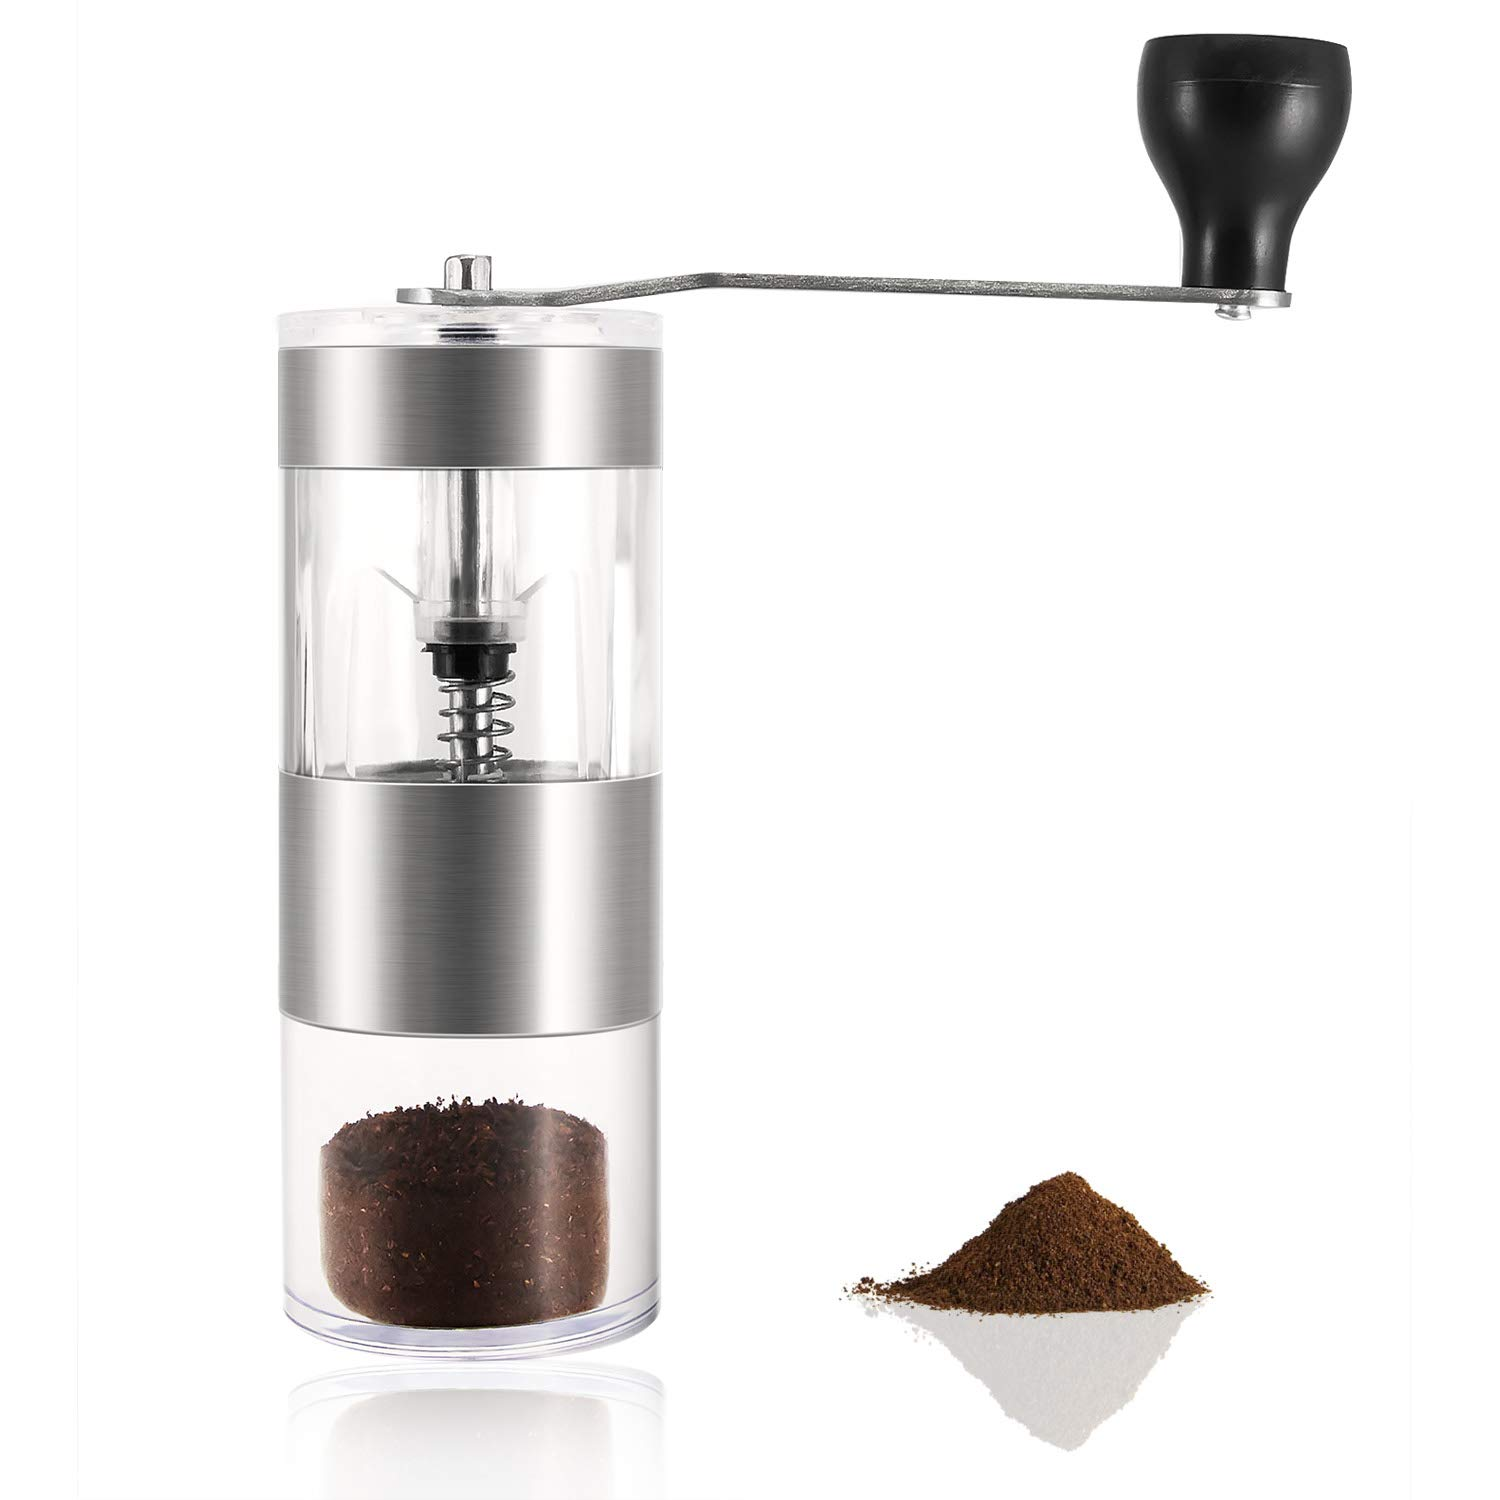 HENSUN Manual Coffee Grinder With Adjustable Ceramic Burrs, Portable Handheld Mini Conical Burr Mill for French Press, Acrylic Jars and Stainless Steel Handle